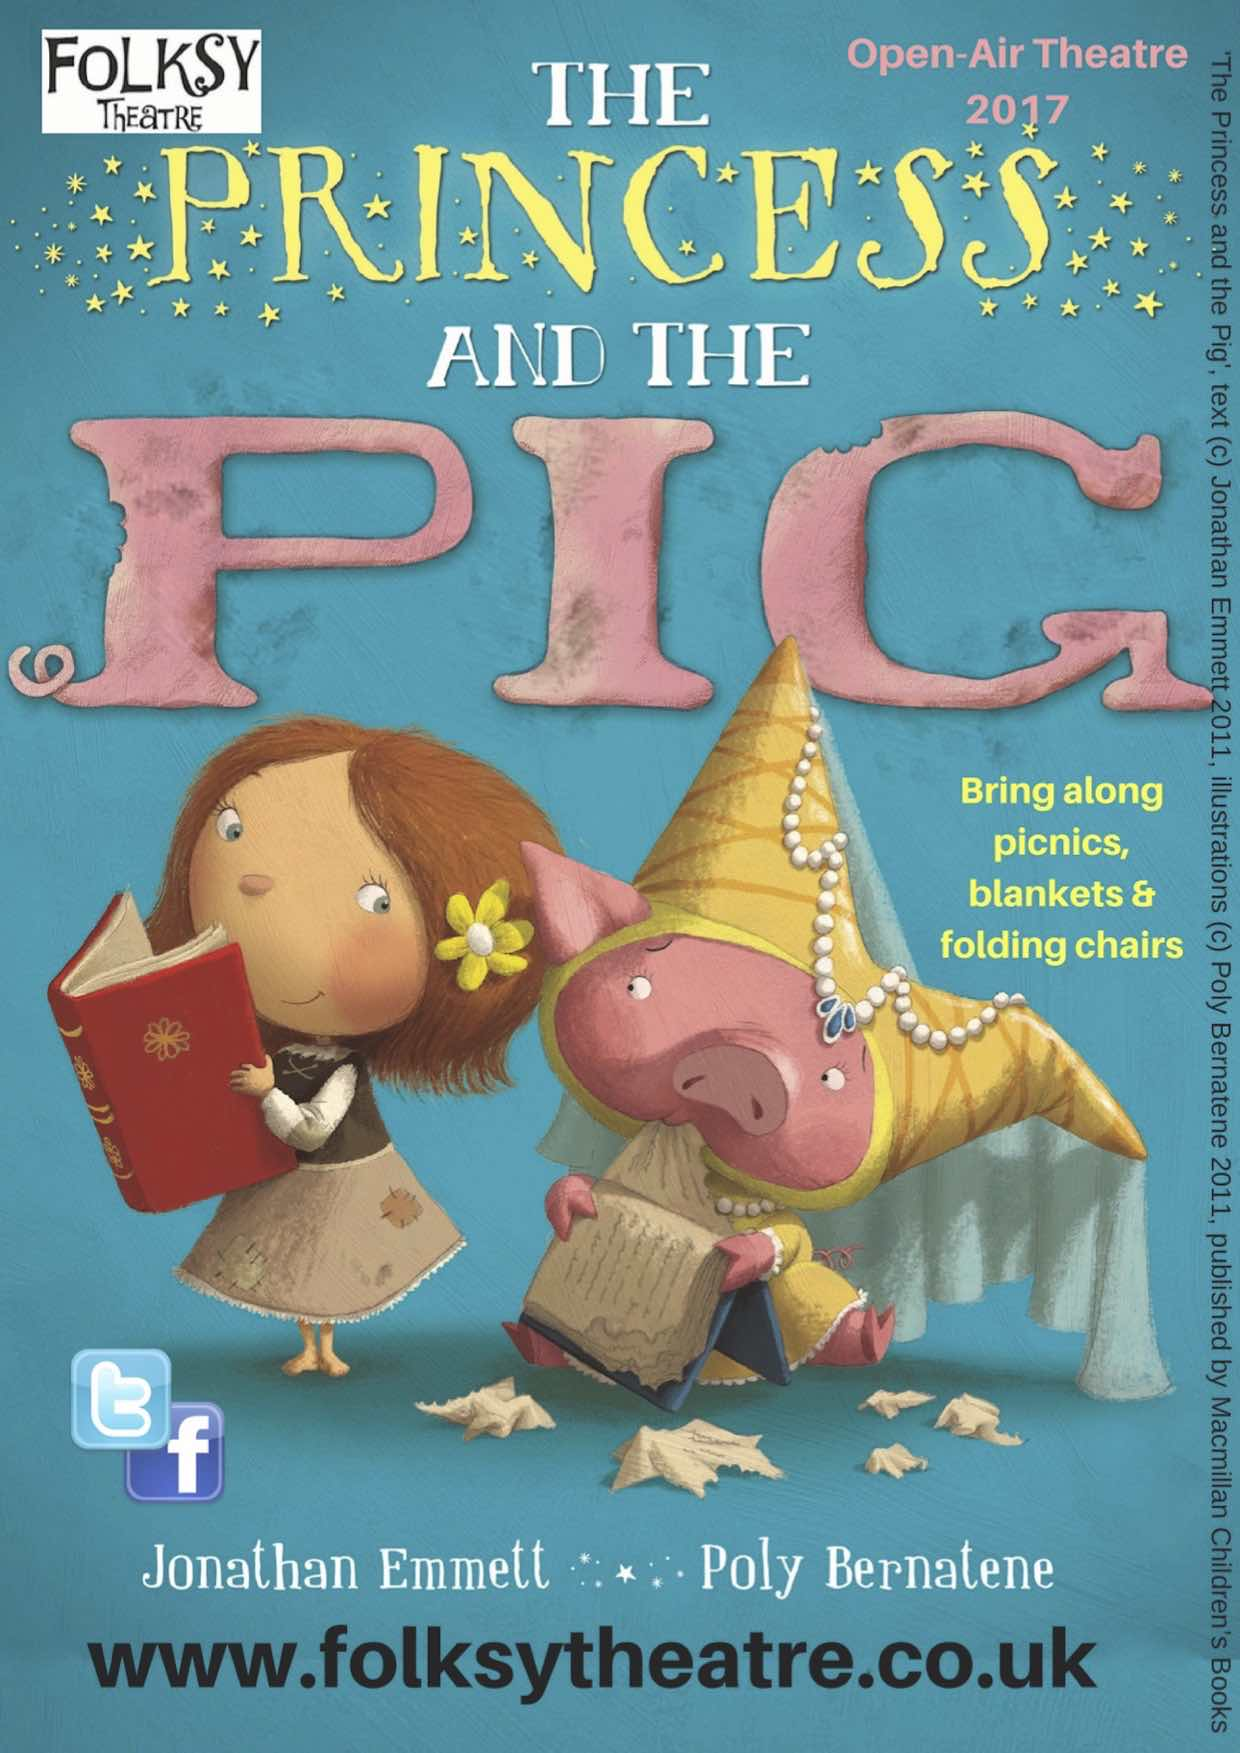 Folksy Theatre present 'The Princess and the Pig""